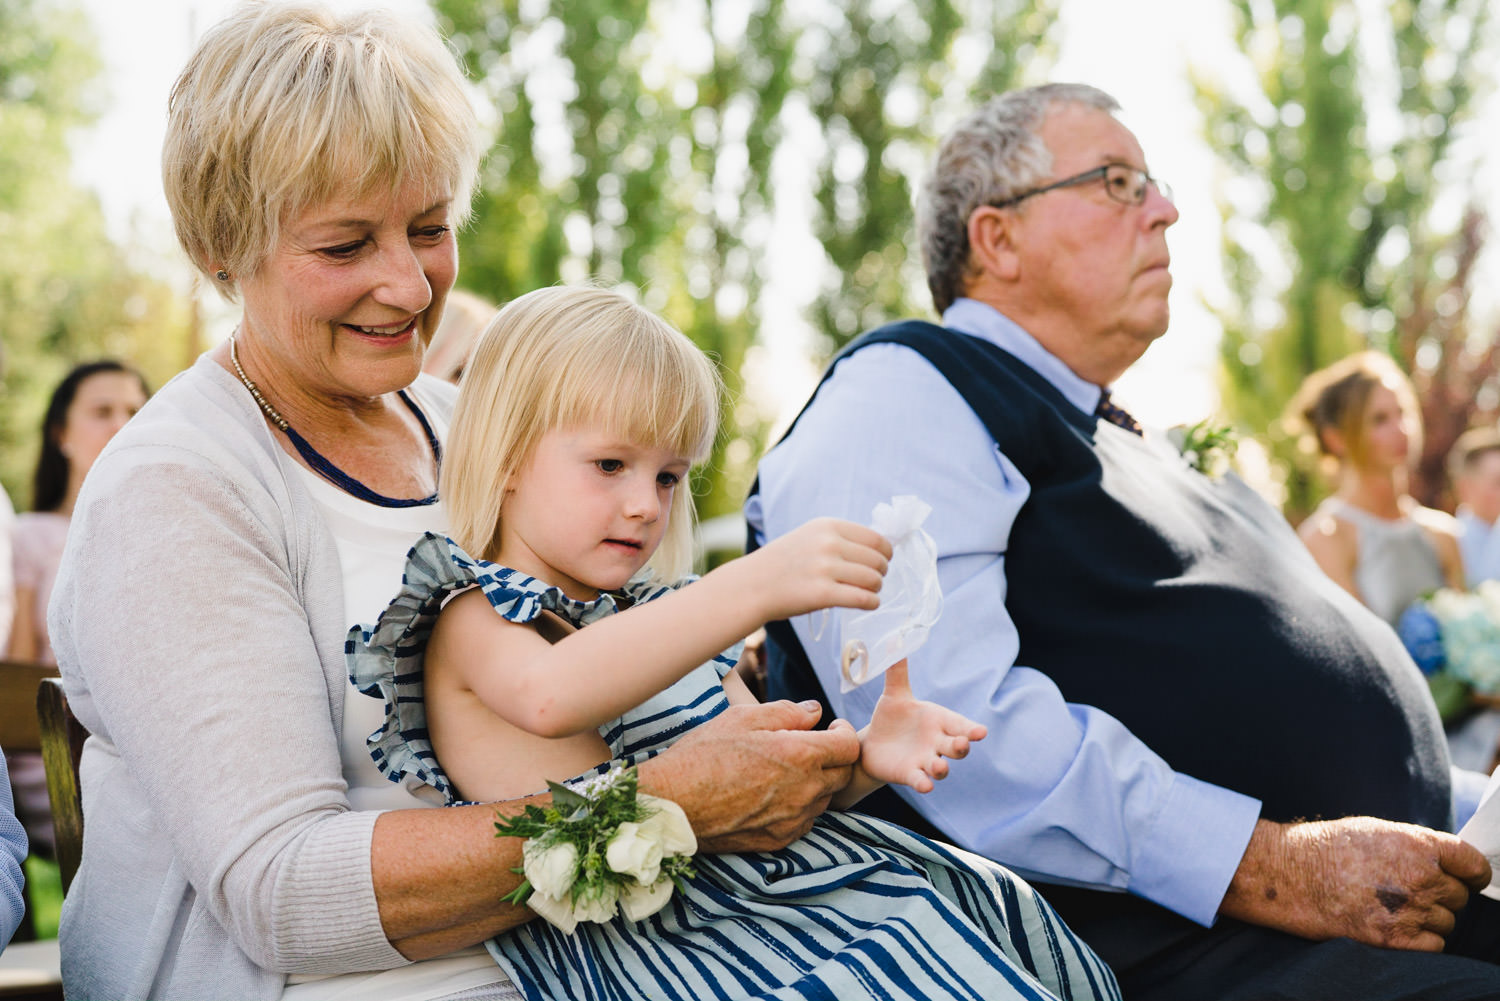 Spring Farm wedding guests with flower girl photo